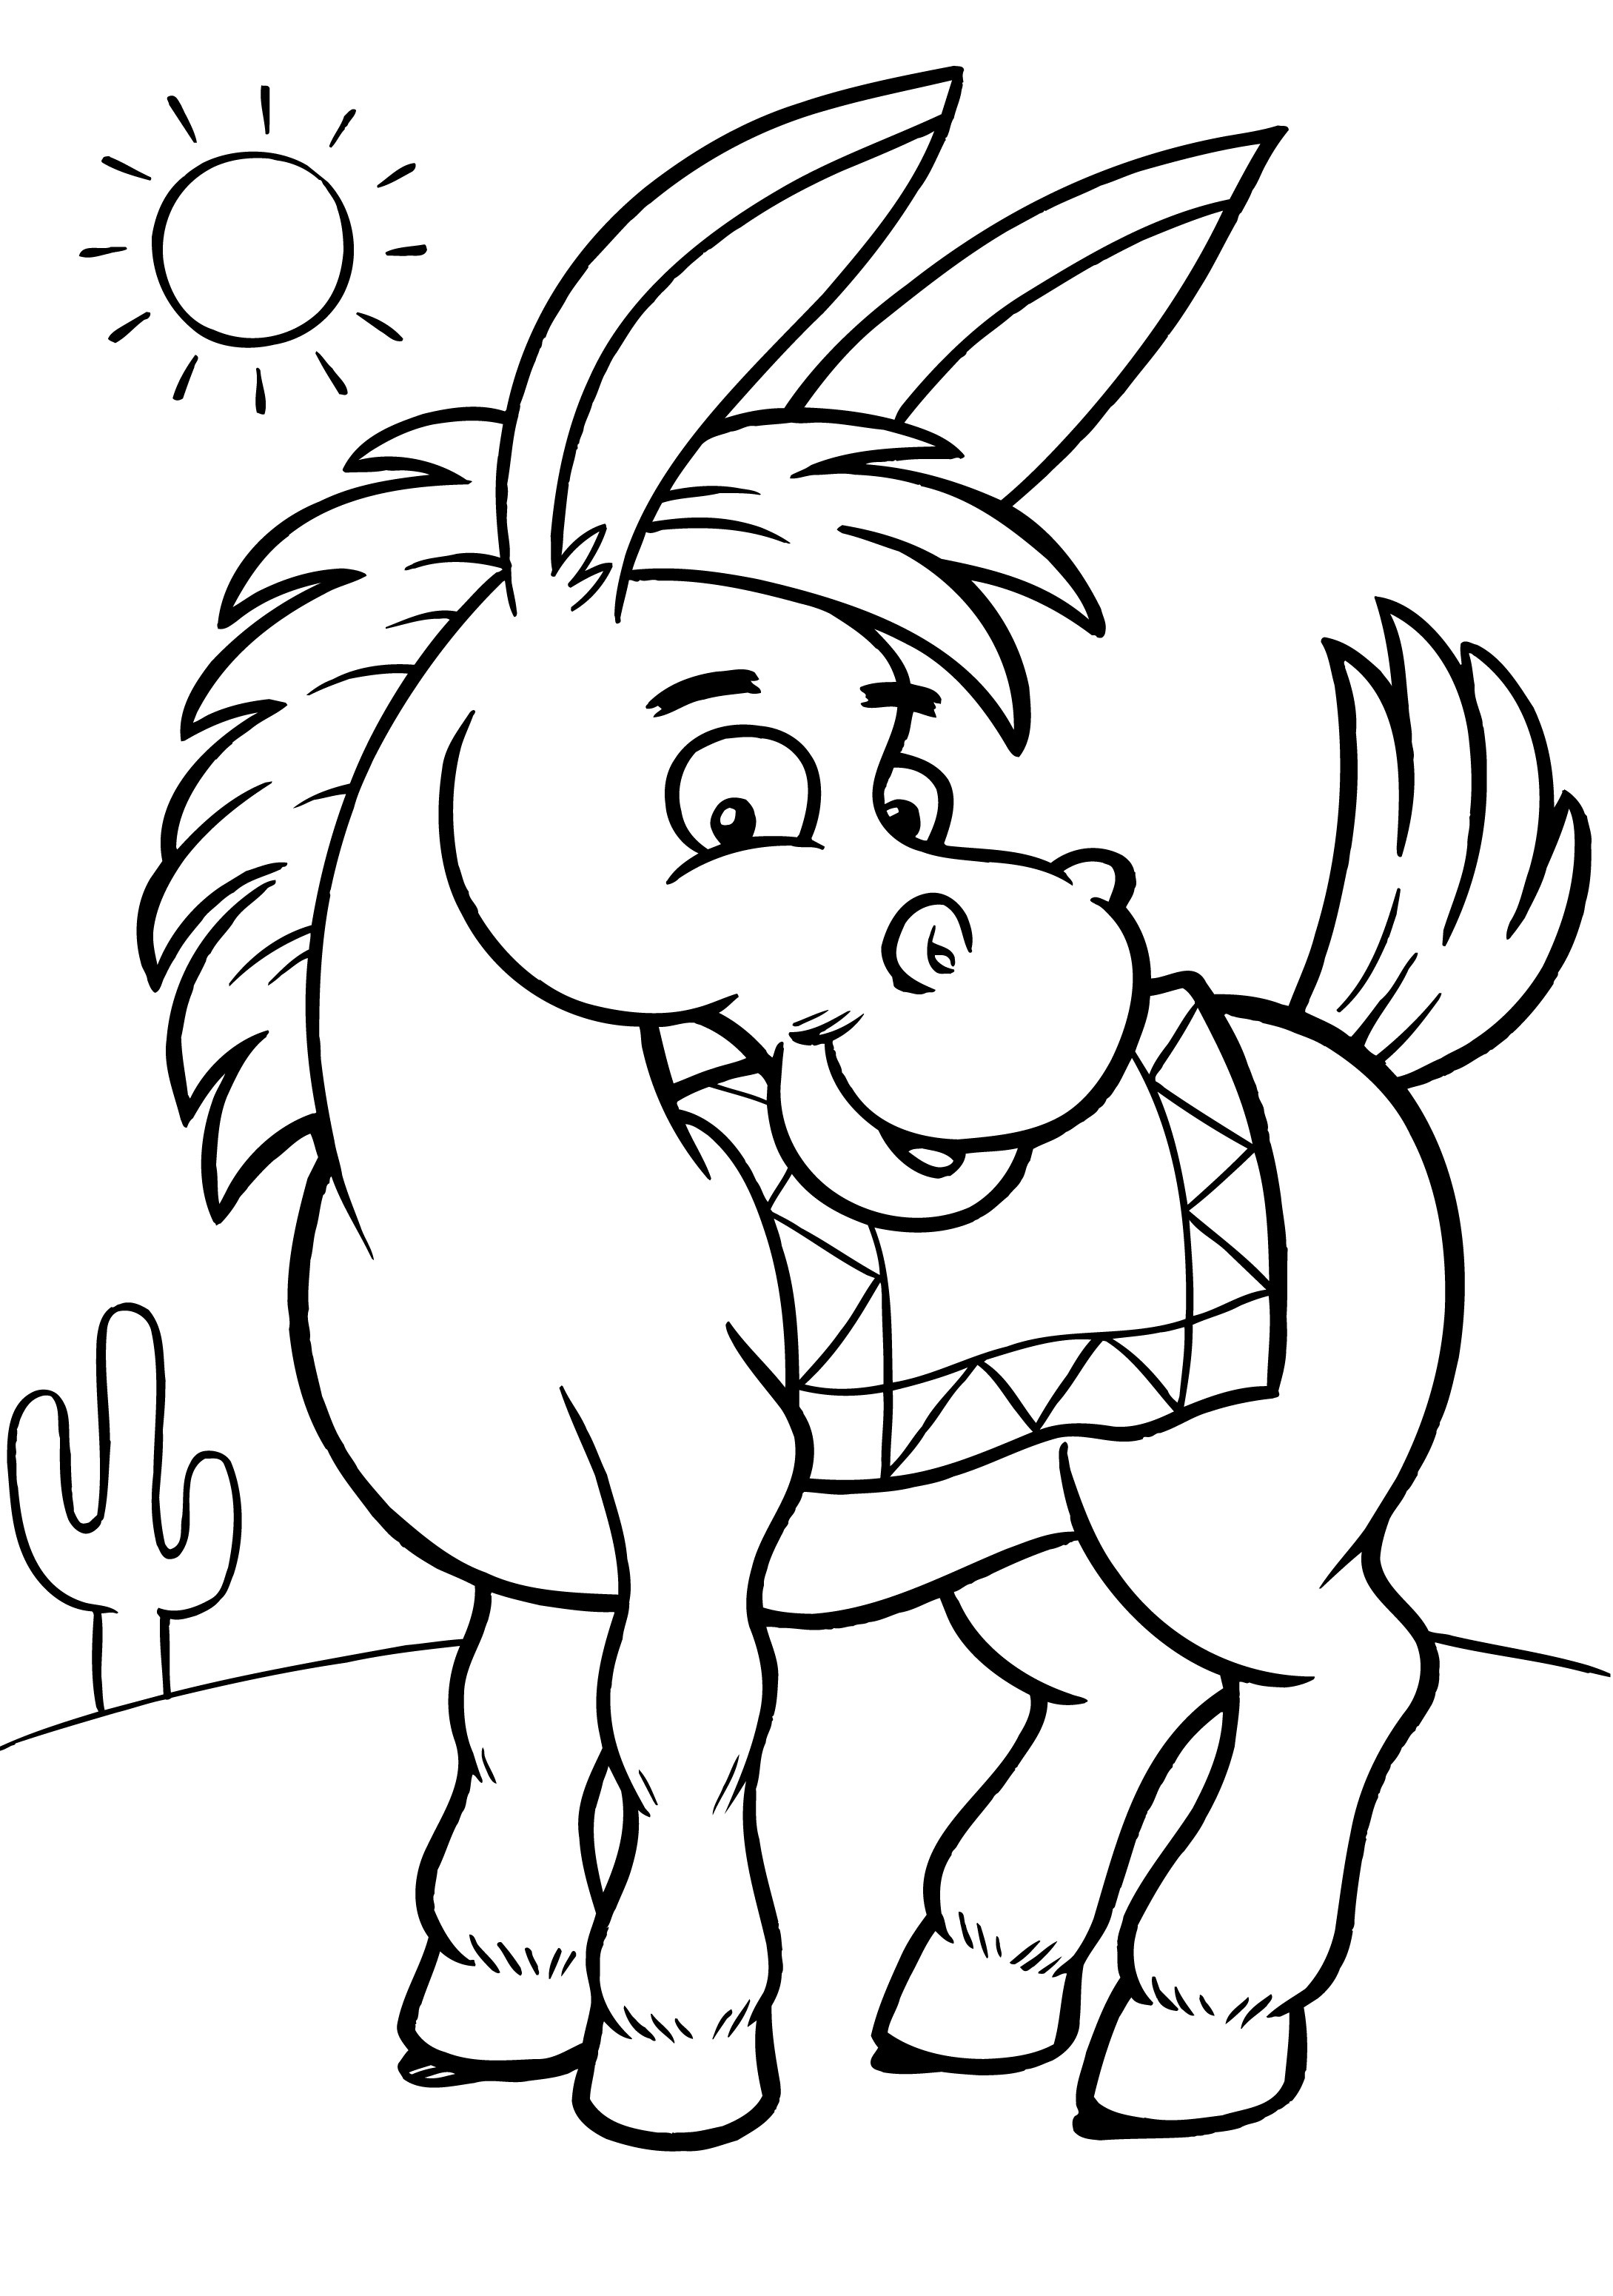 coloring sheet coloring pictures for kids colouring pages abacus kids academy alberton day pictures kids sheet coloring coloring for